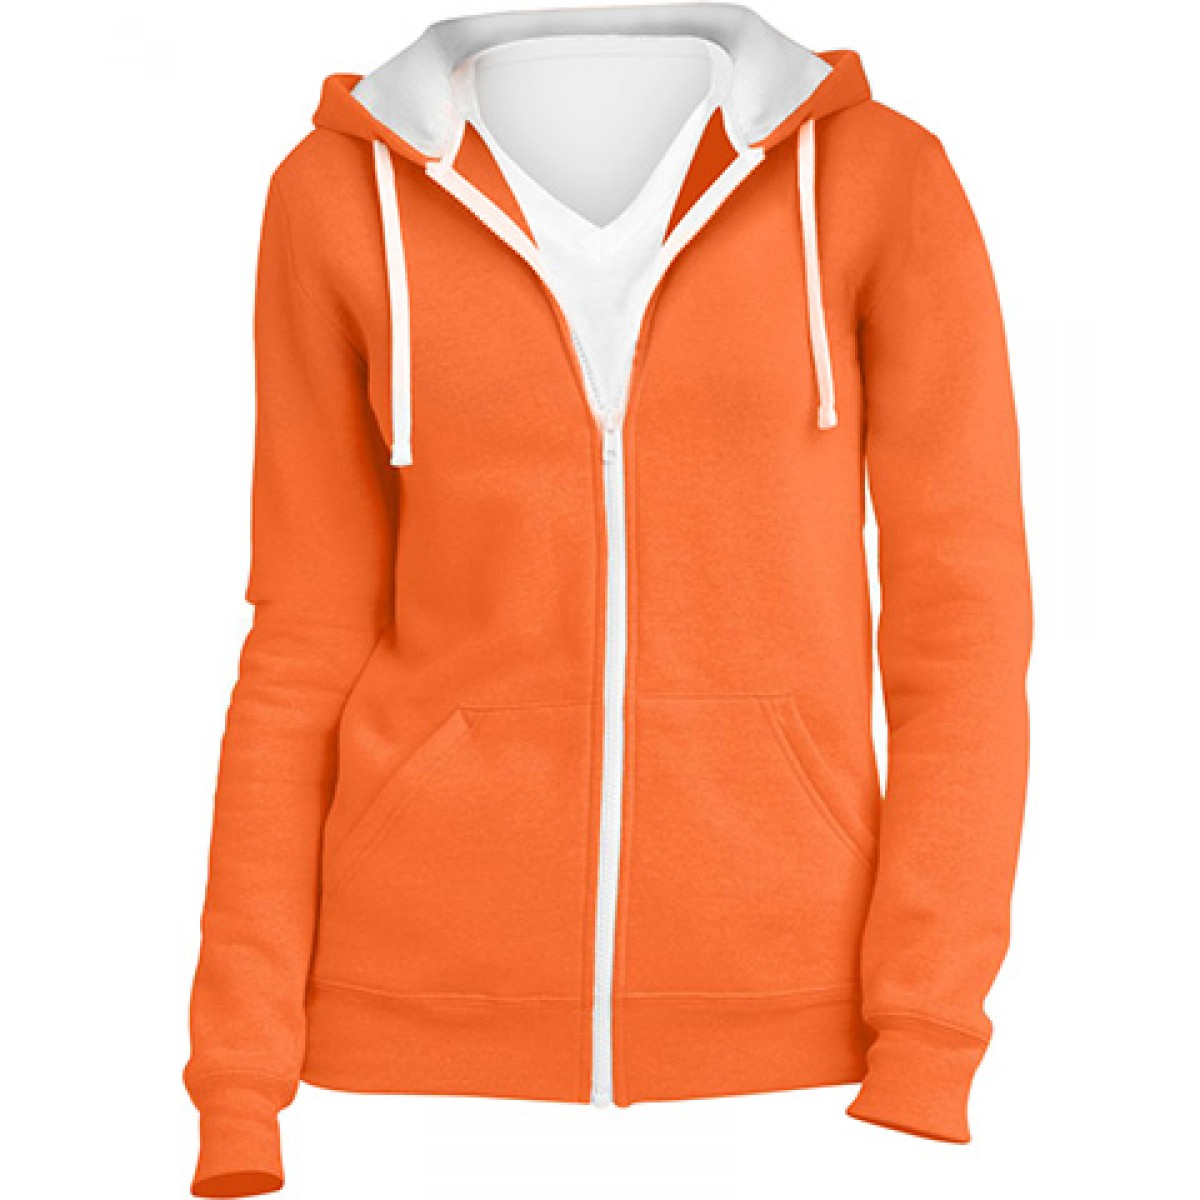 Juniors Full-Zip Hoodie-Neon Orange -S